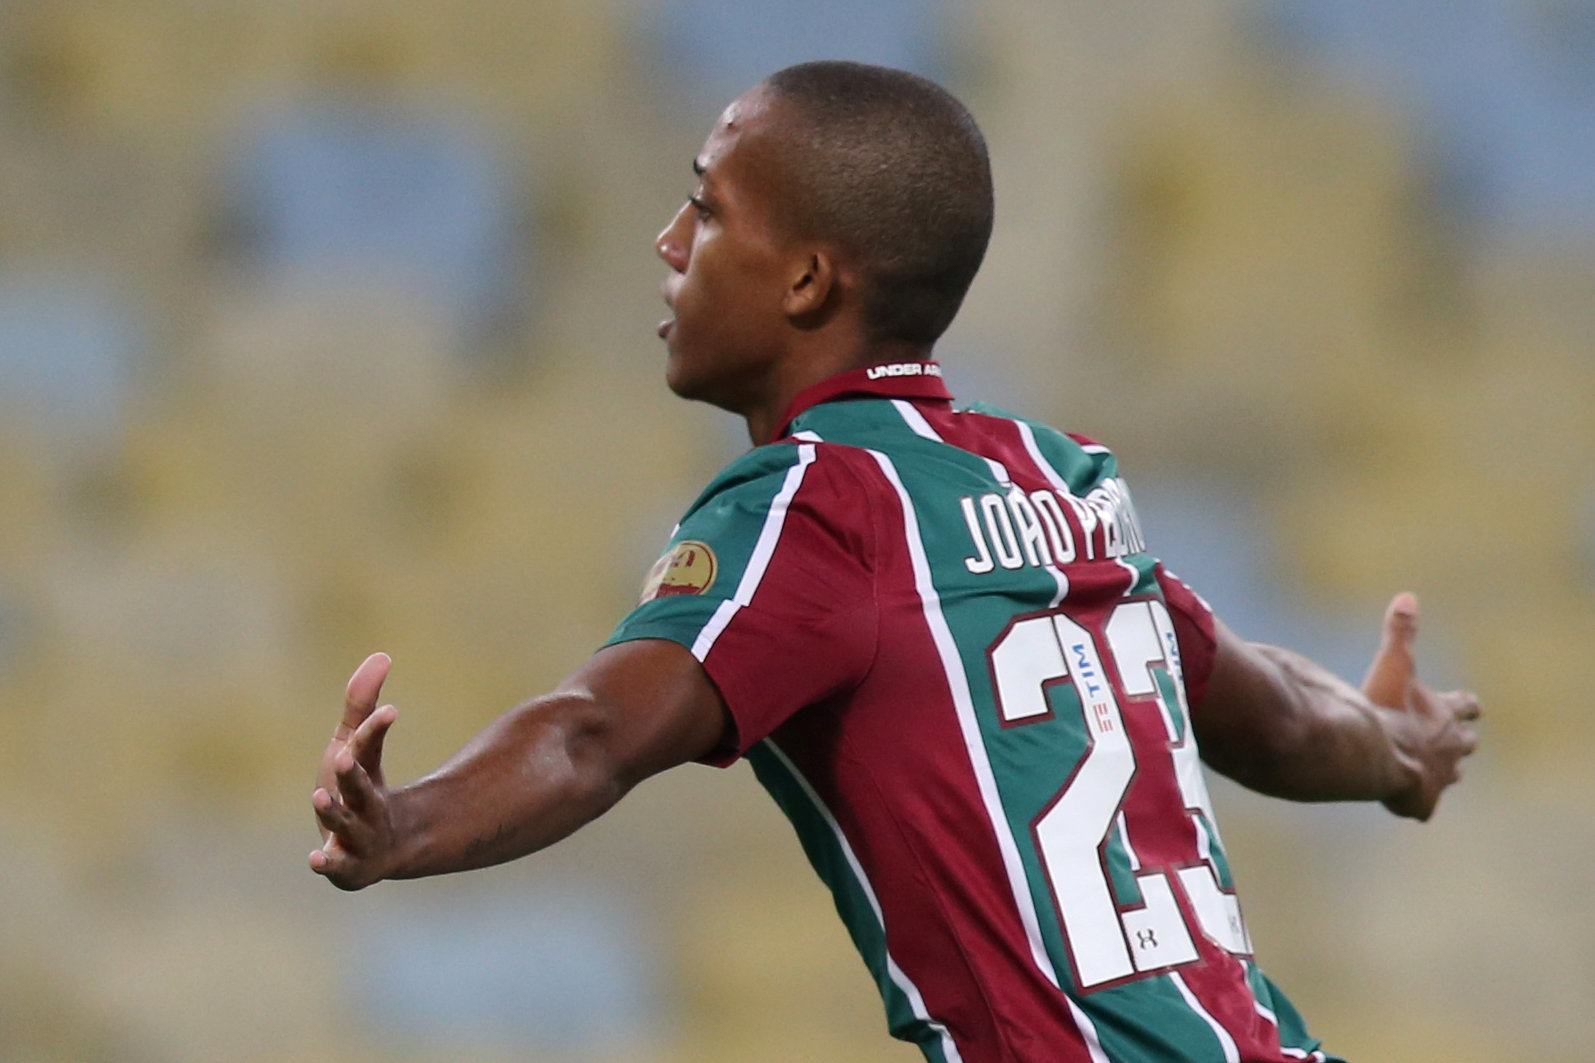 Reports in Brazil claim Watford have rejected a request from Fluminense to keep Joao Pedro until next summer